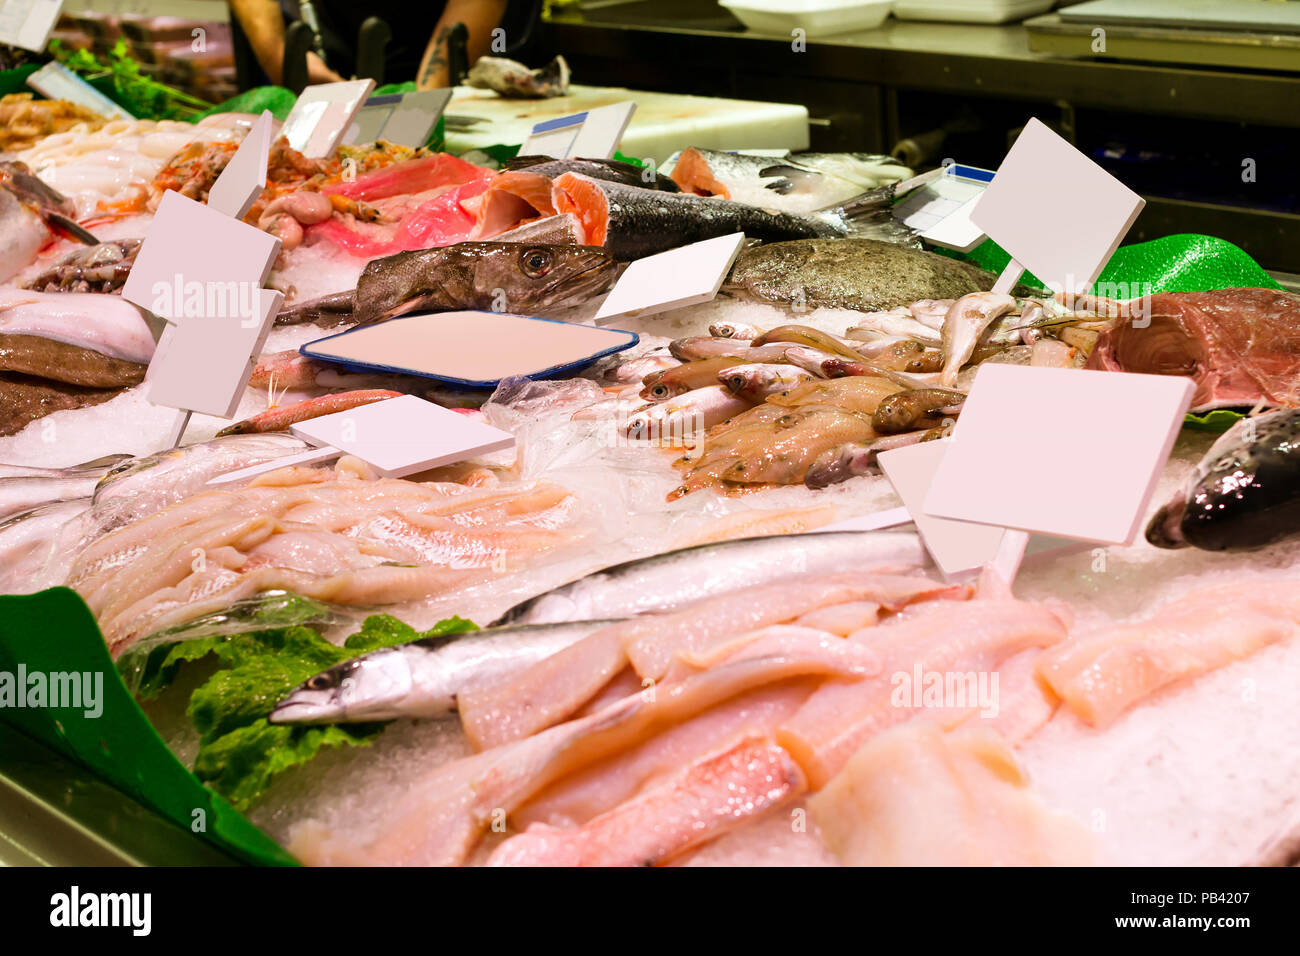 Fresh fish, seafood and sea delicacies on ice countertop in food hypermarket. Chilled fish fillet and oceanic shellfish. Costa Brava, Catalonia, Blane - Stock Image